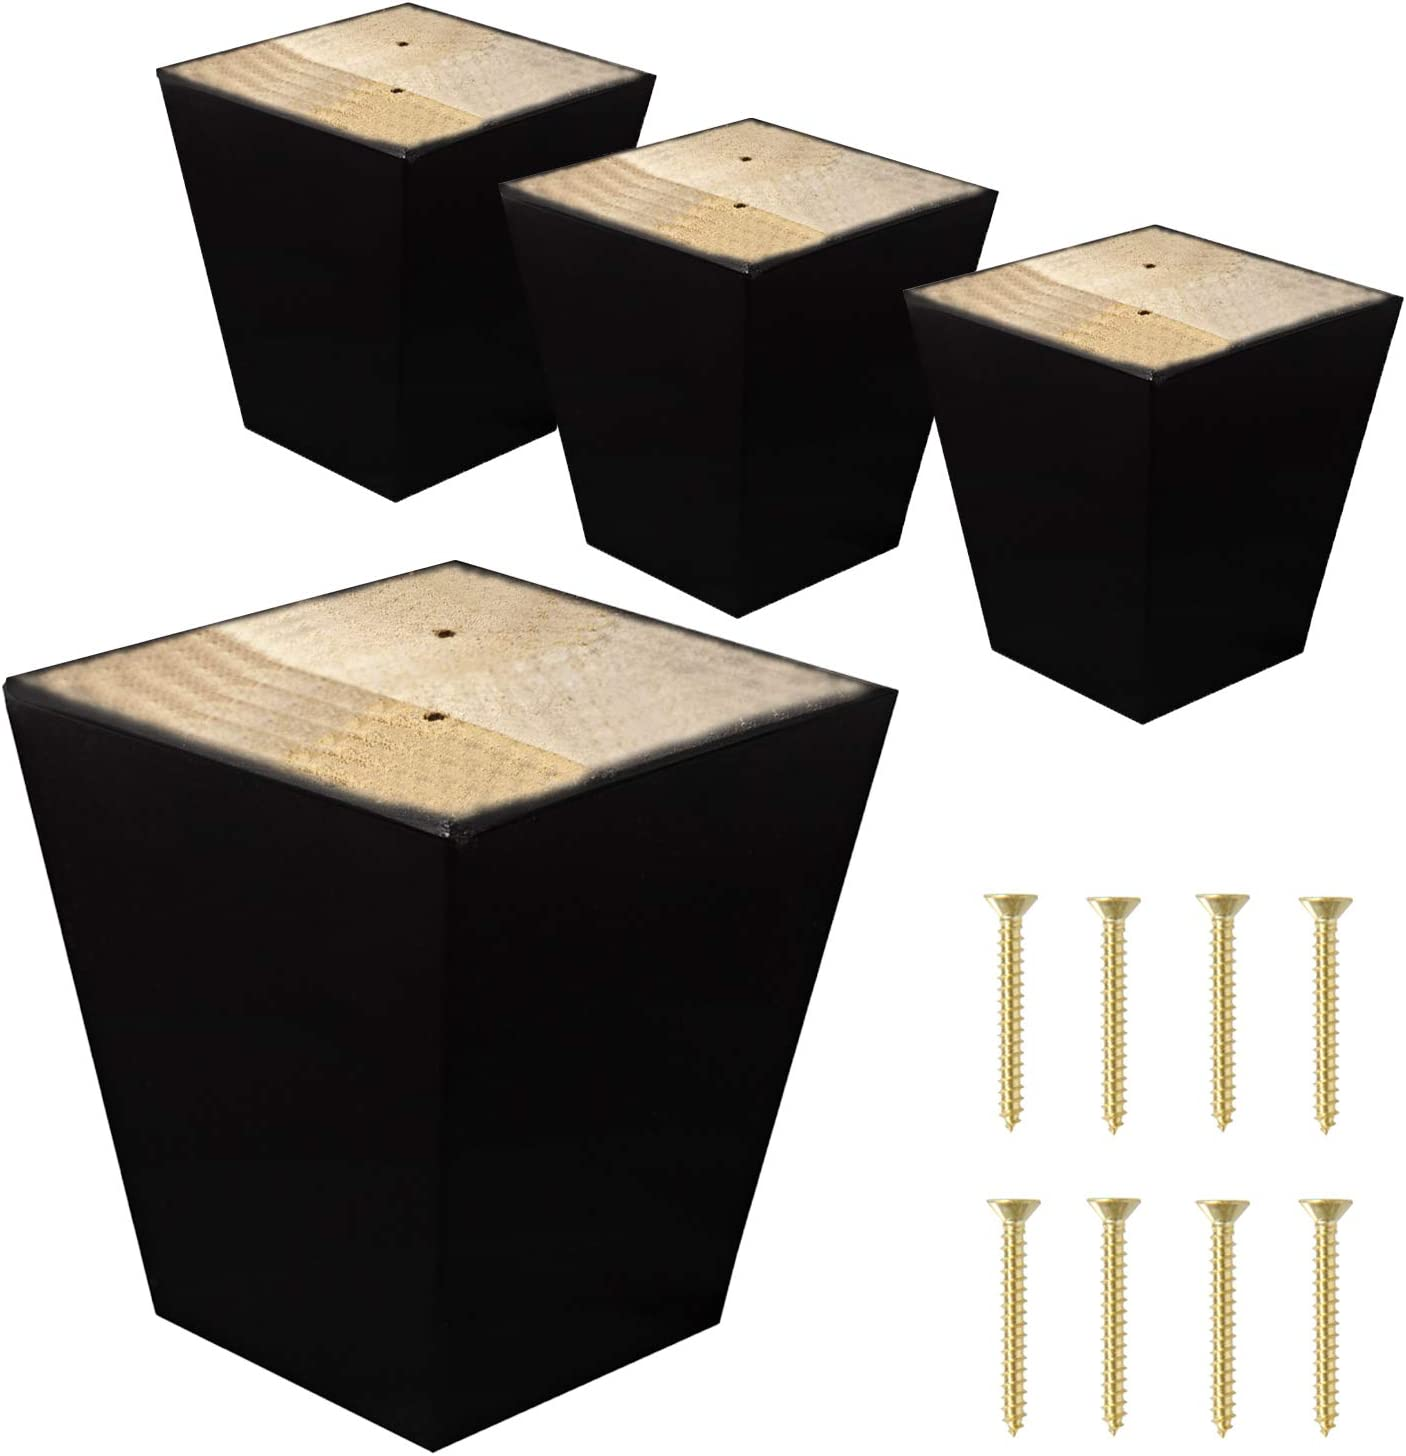 "ComfortStyle Legs for Furniture, Sofa Ottoman and Chair 4"" Wood Feet Replacement, Set of 4 Square Tapered Pyramid Feet (Dark Espresso)"